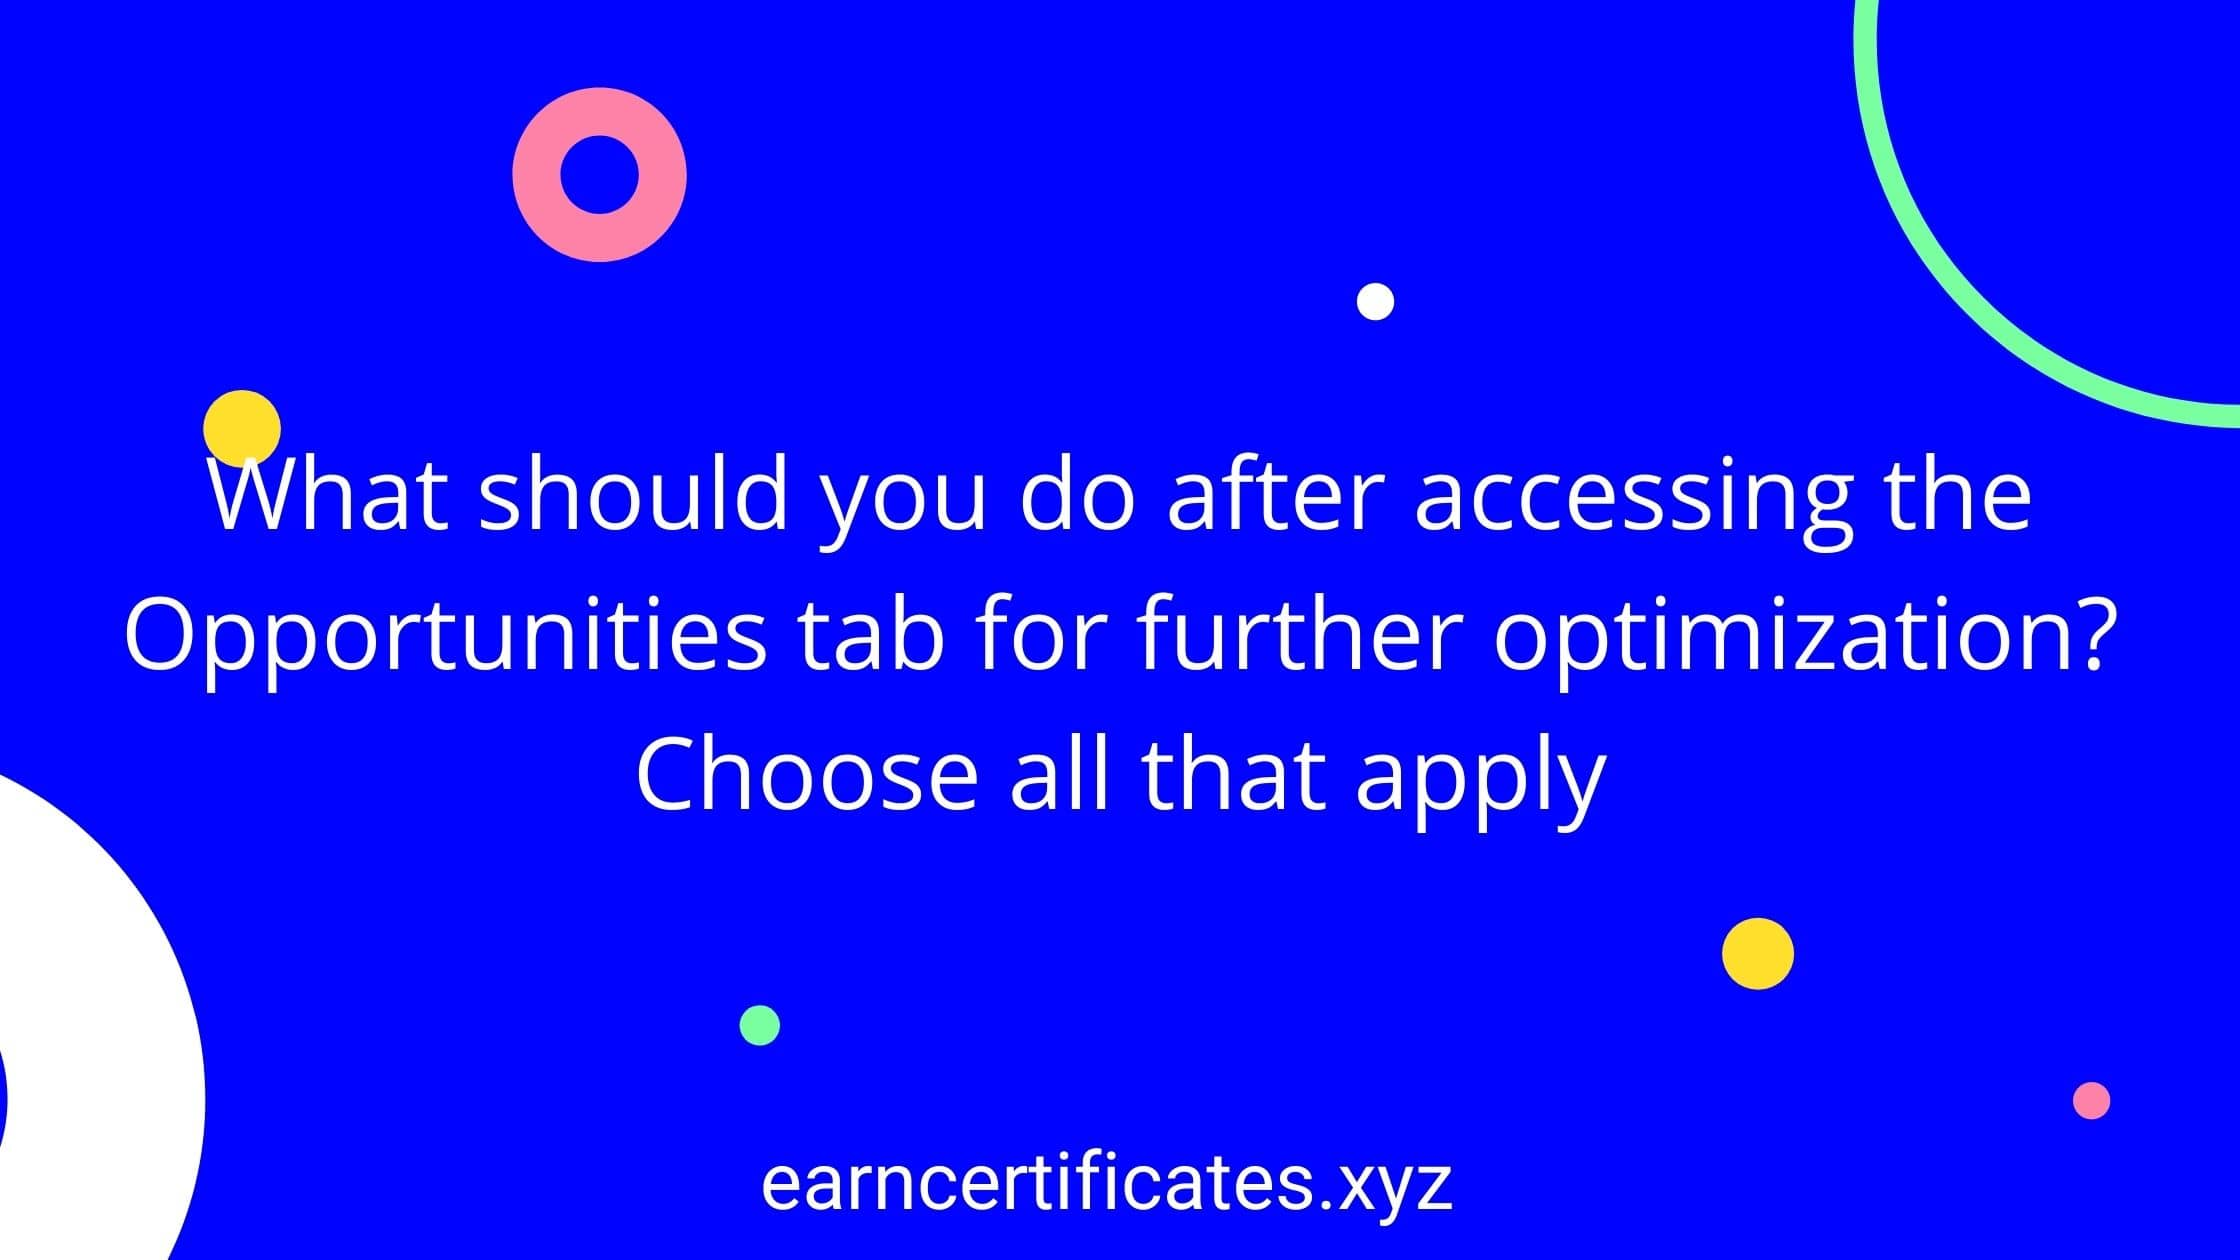 What should you do after accessing the Opportunities tab for further optimization? Choose all that apply